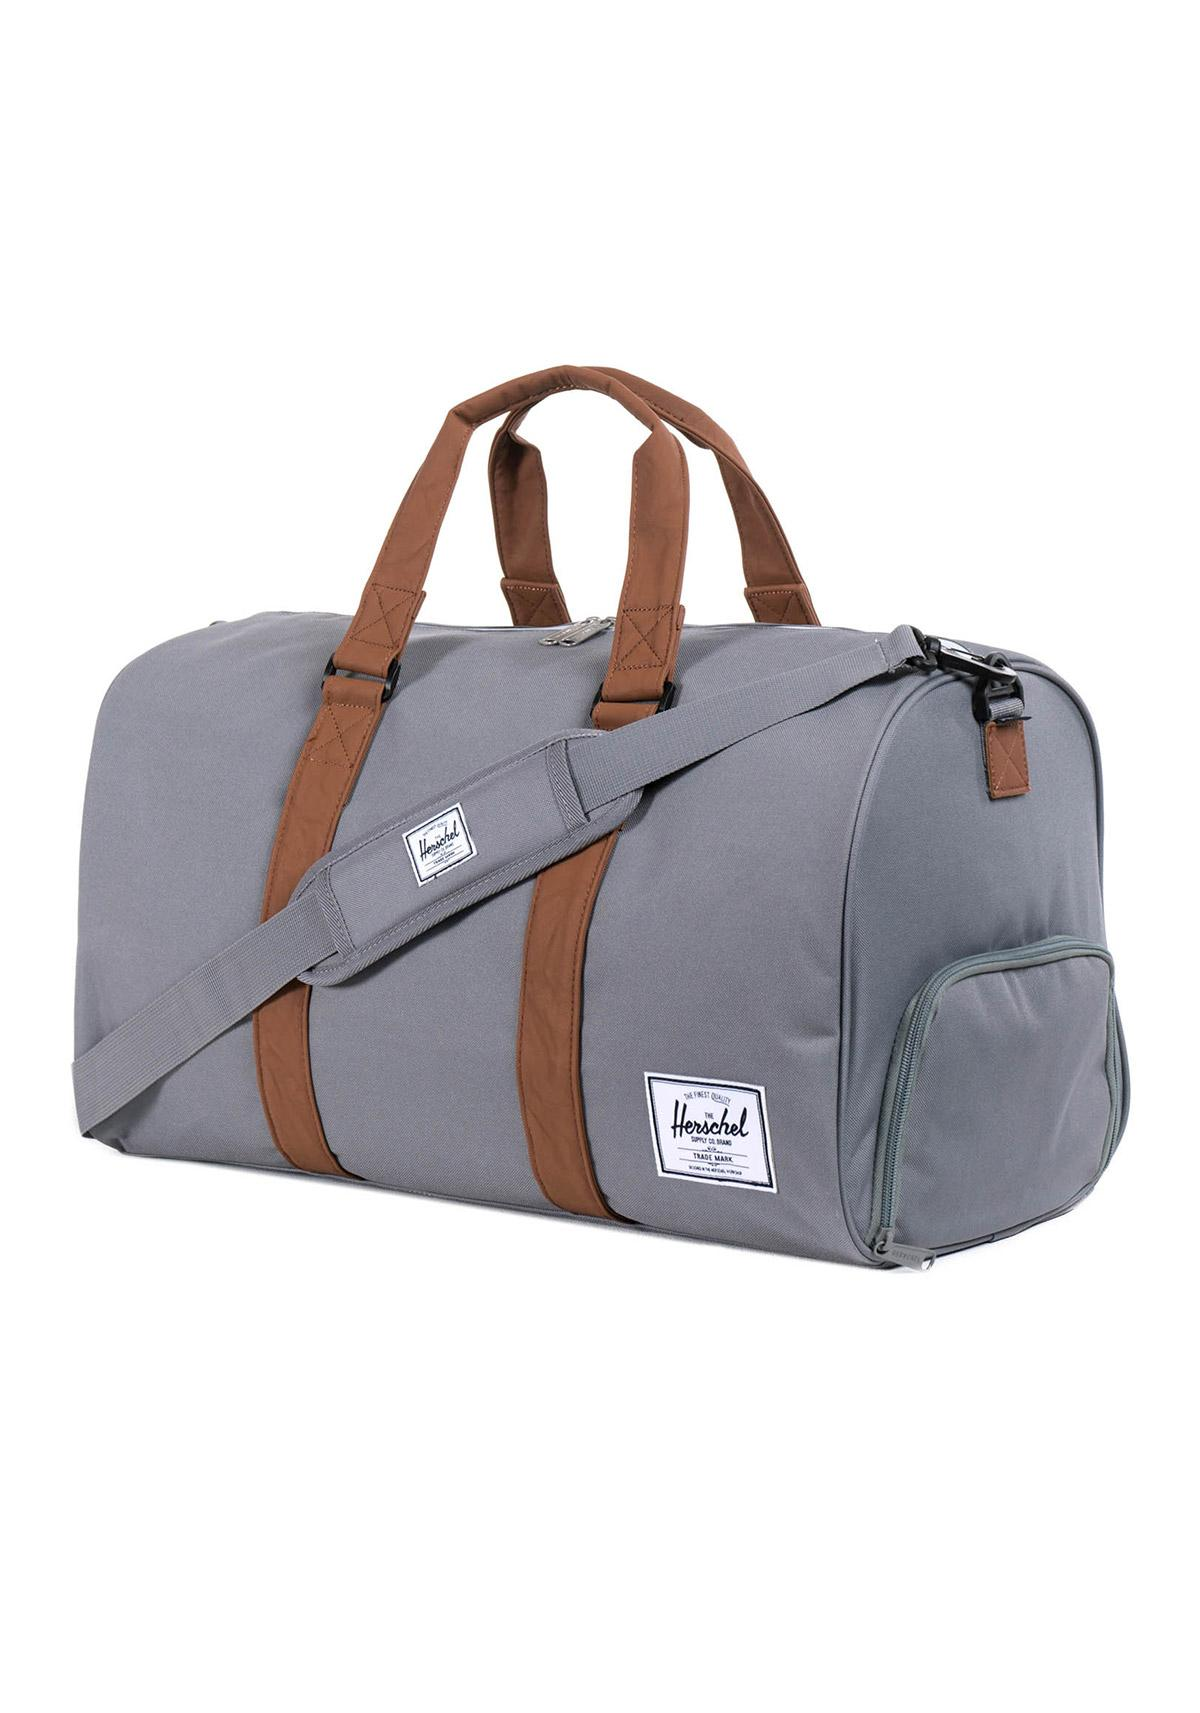 Bag Herschel Novel Duffle 42L